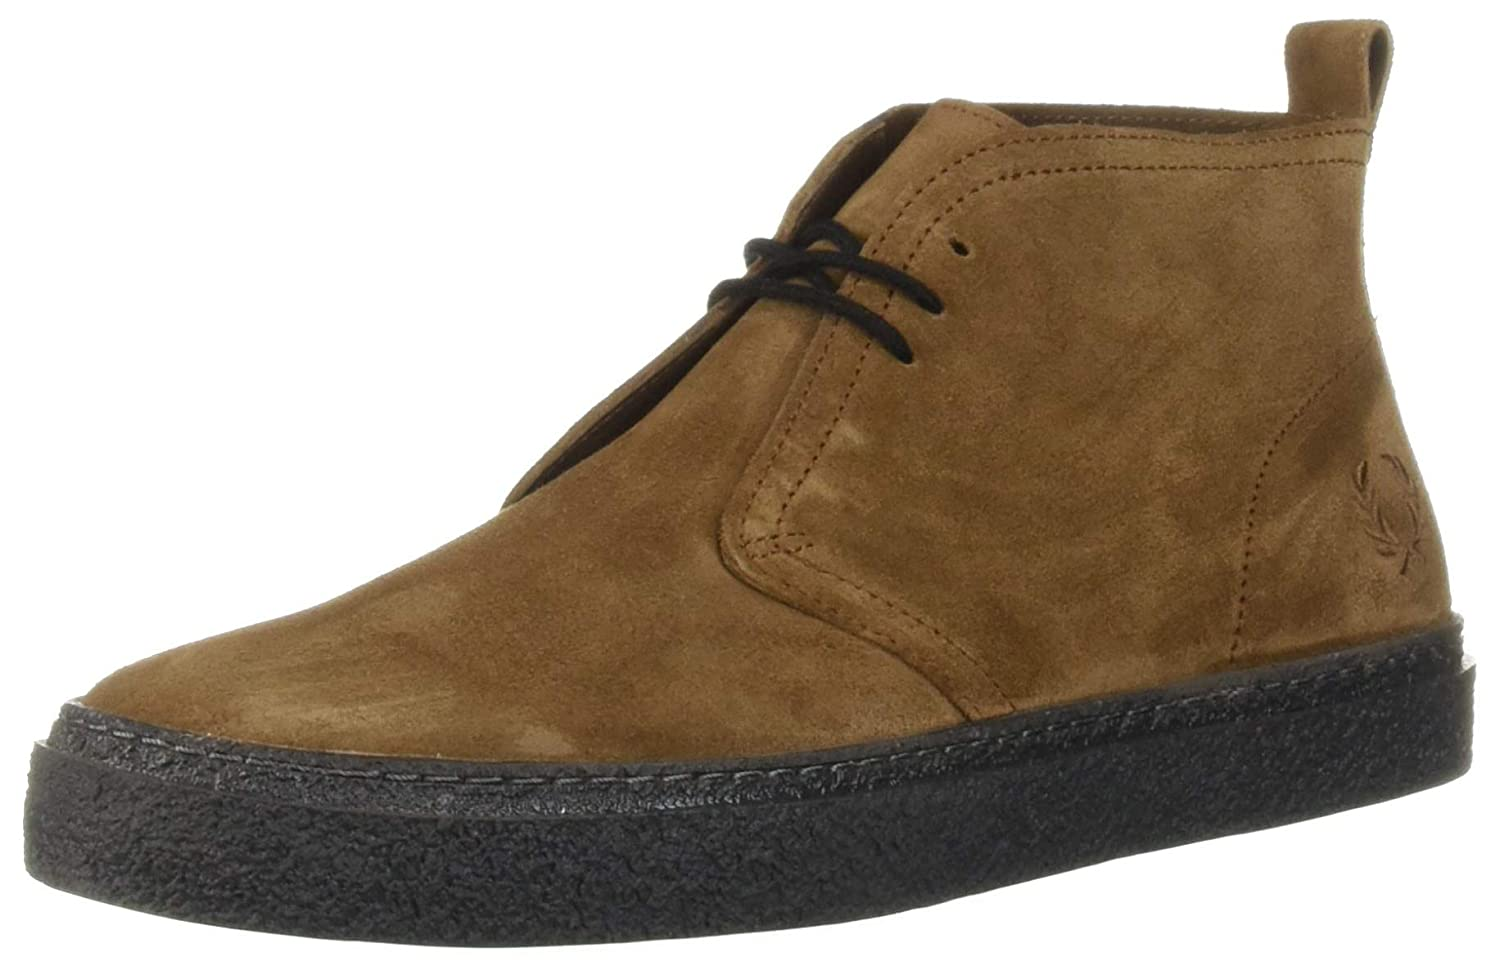 44a59d90835 Fred Perry Men's Hawley Suede Sneaker Tobacco 12 D UK (13 US)